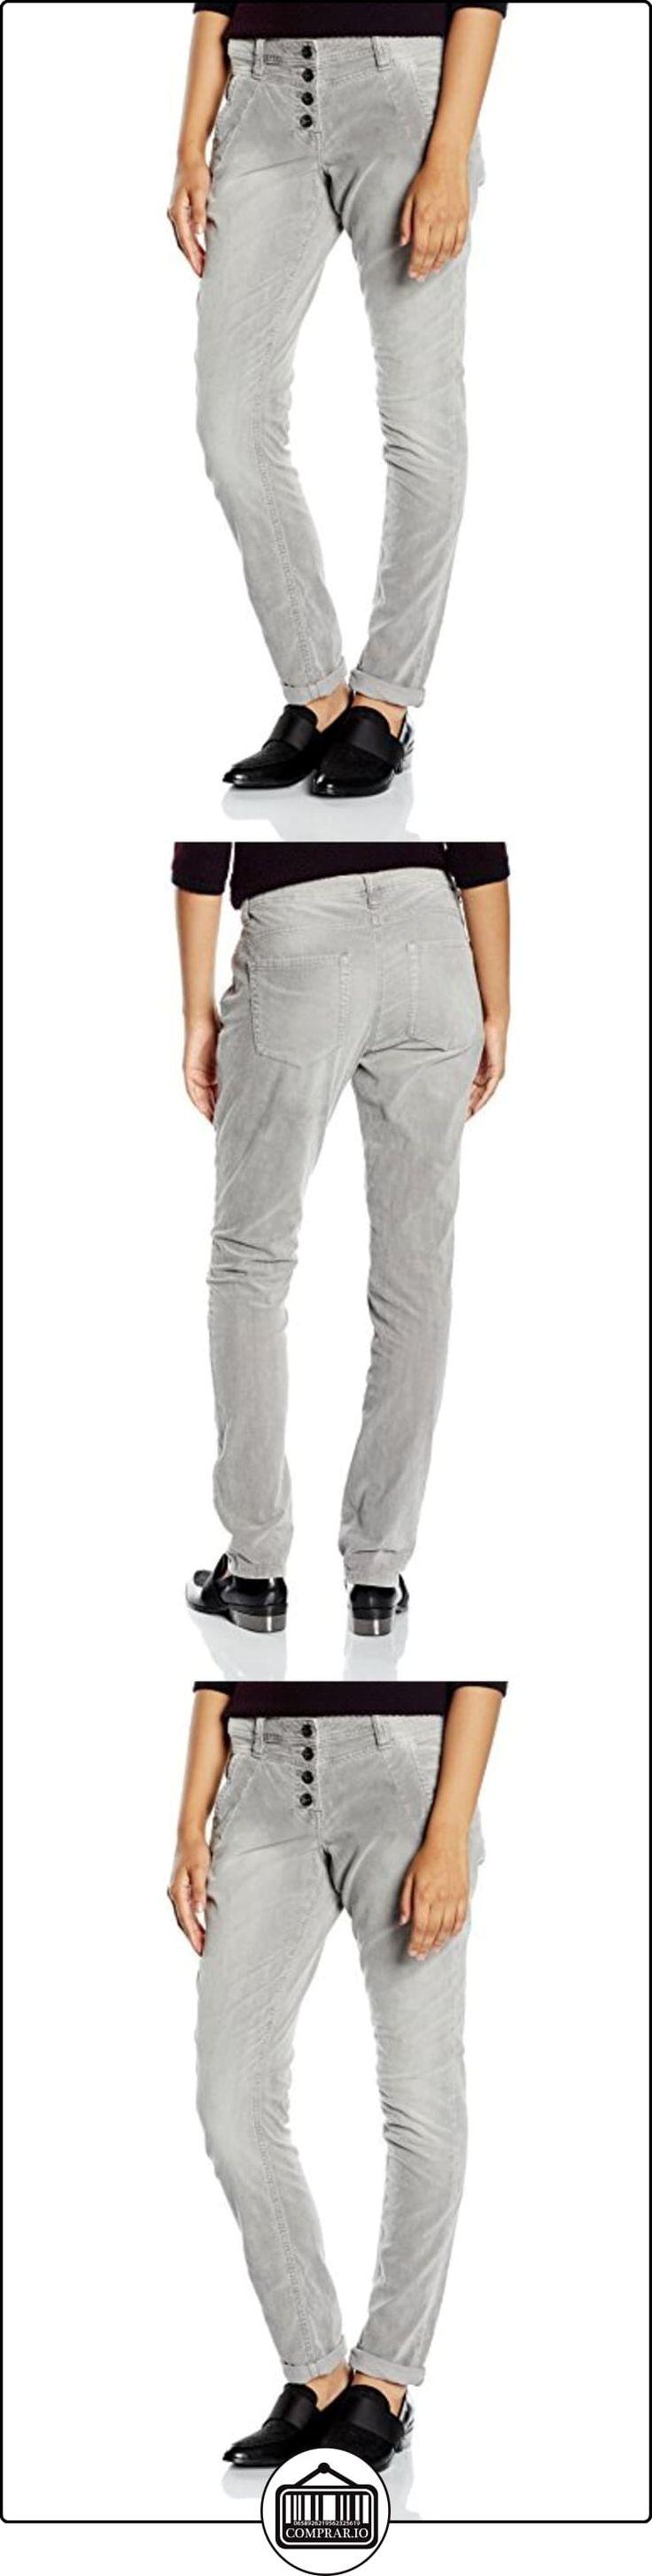 TOM TAILOR velvet relaxed Tapered/509 - Vaqueros para mujer, color gris ( smooth grey 2645 ), talla W46 / L34  ✿ Vaqueros ✿